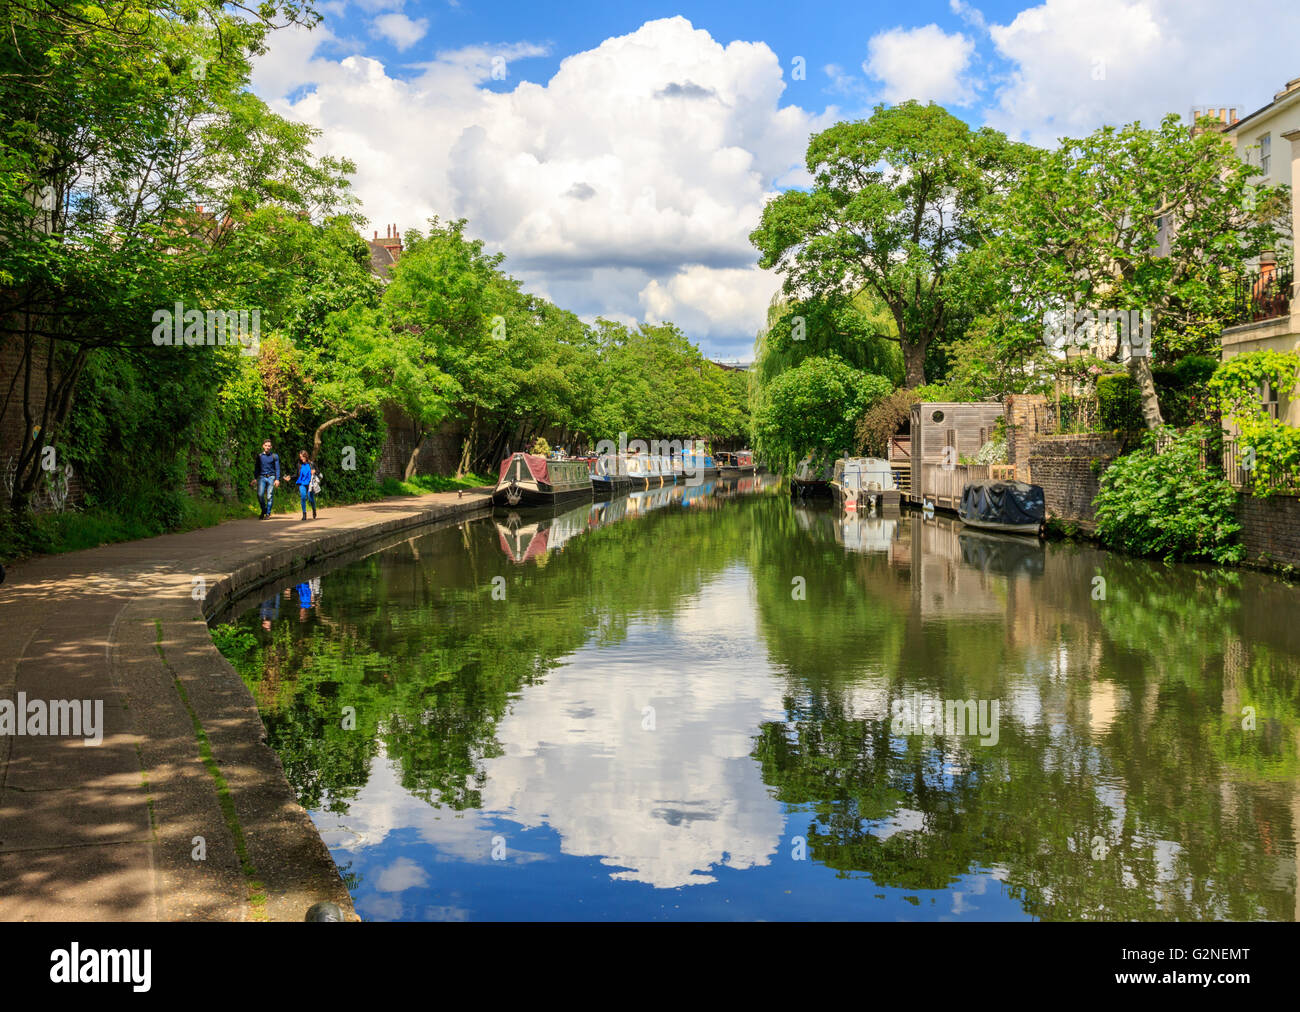 London, UK - May 23, 2017 - People walking on the towpath of Regent's canal Stock Photo